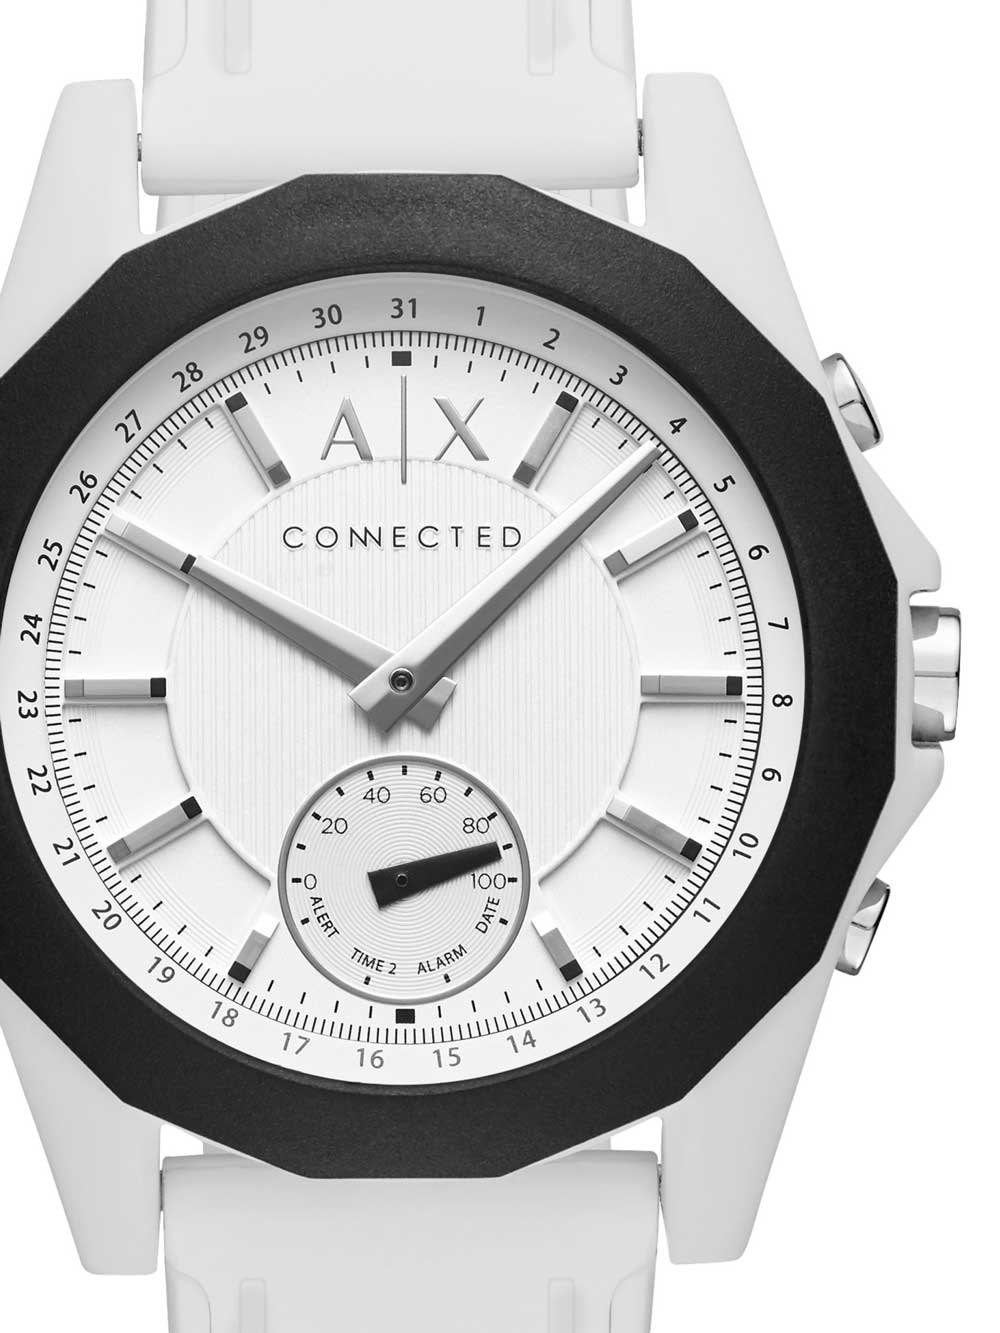 Image of Armani Exchange AXT1000 Exchange Connected Unisex 44mm 5ATM